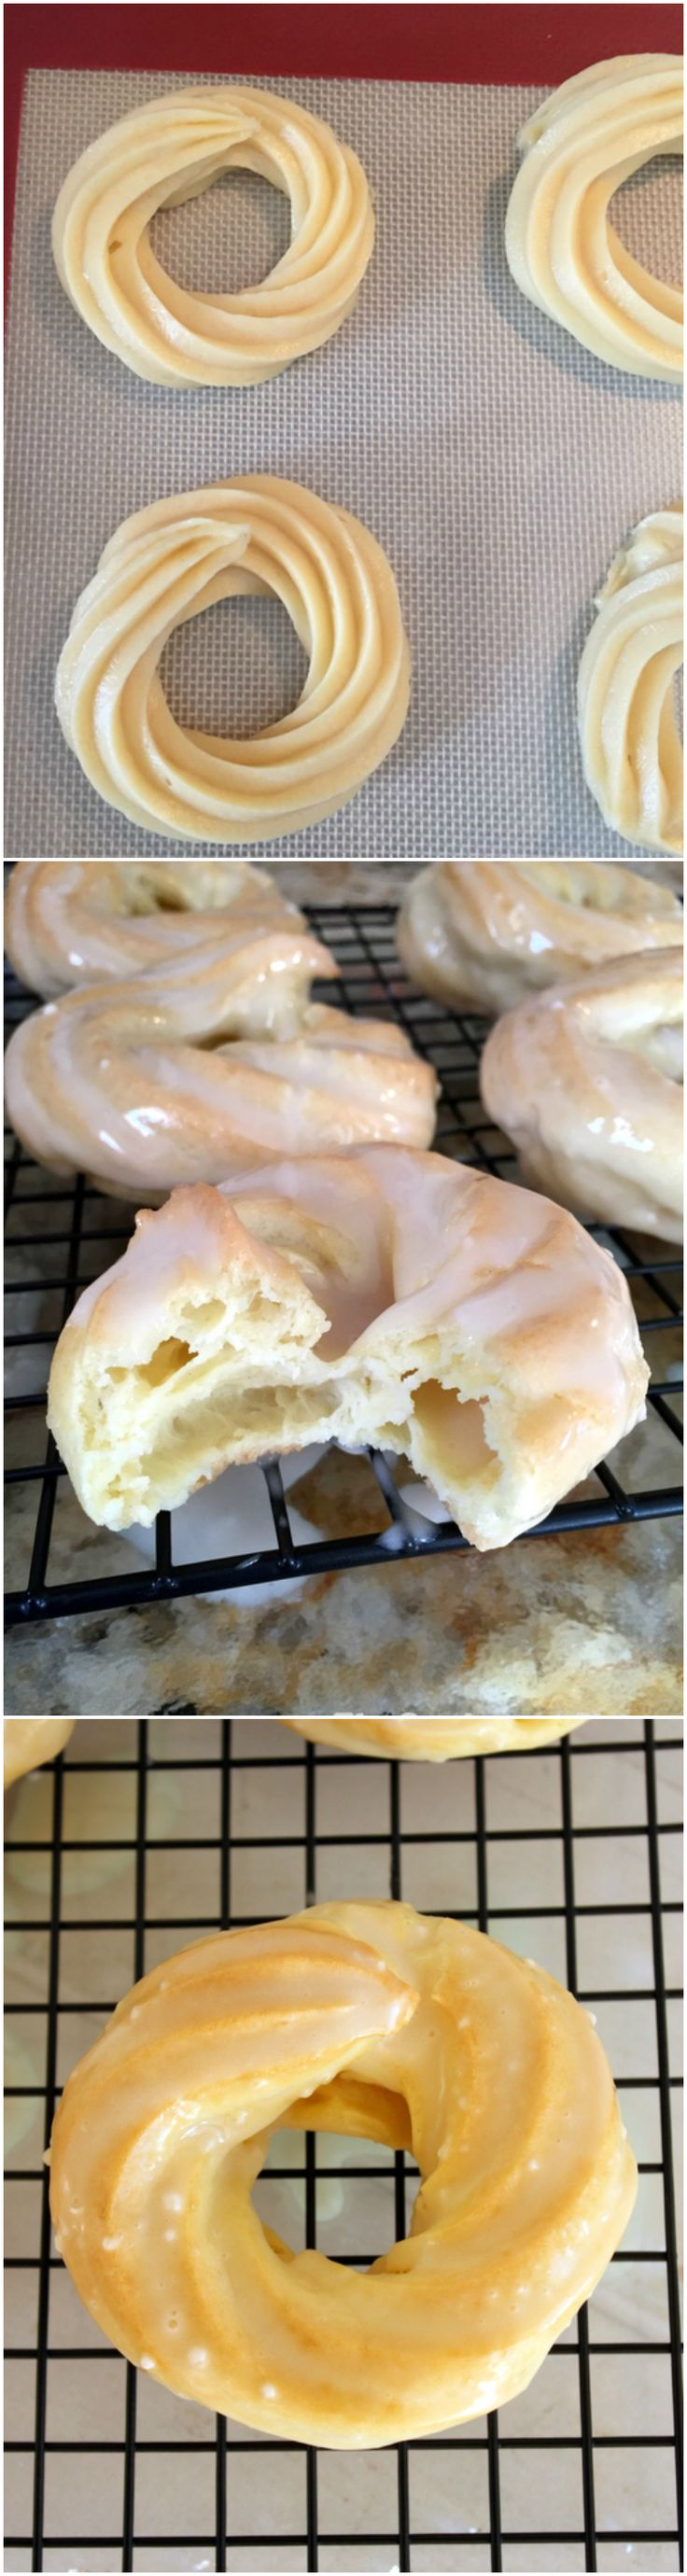 Oven Baked French Cruller Donuts